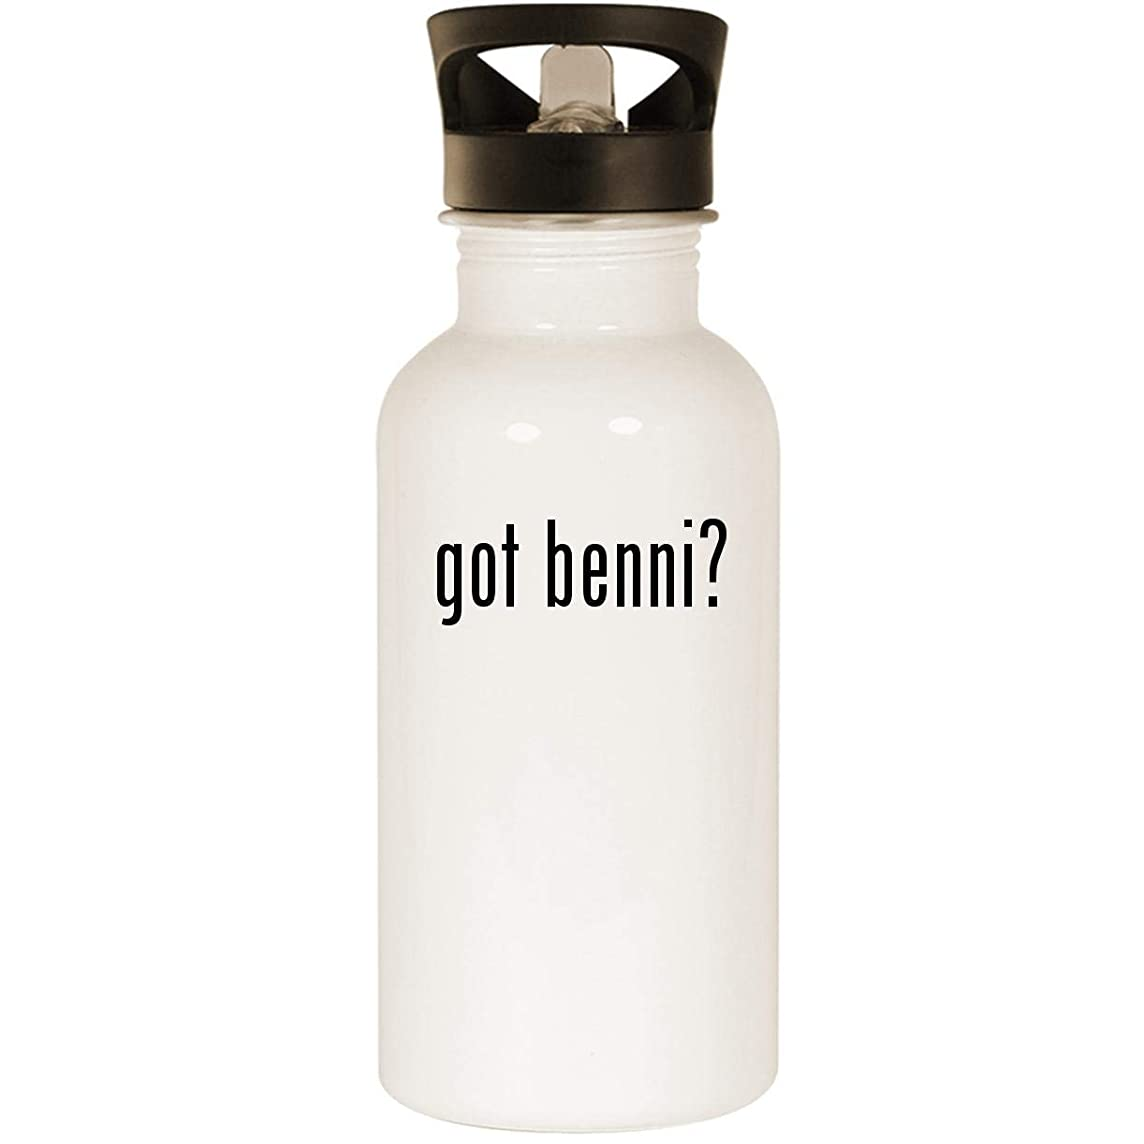 got benni? - Stainless Steel 20oz Road Ready Water Bottle, White